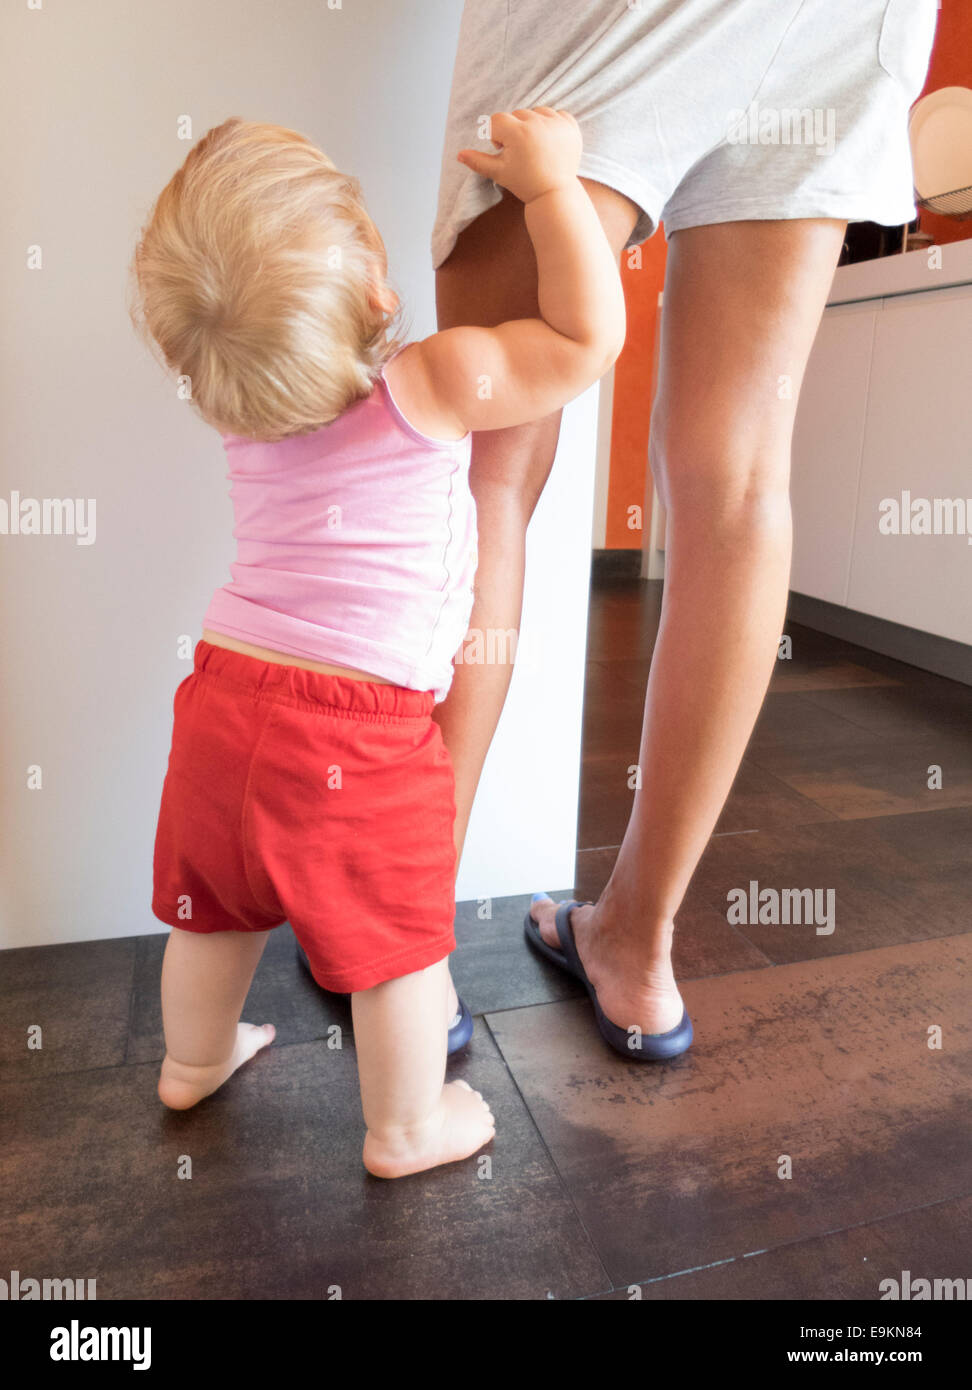 blonde baby red shorts clutching mom leg in white kitchen - Stock Image